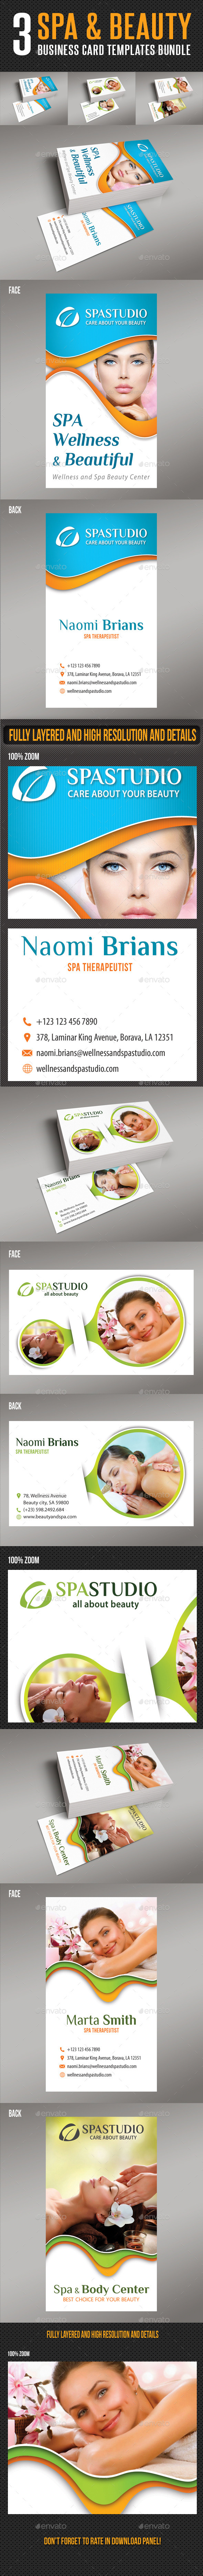 3 in 1 Spa And Beauty Business Card Bundle - Industry Specific Business Cards